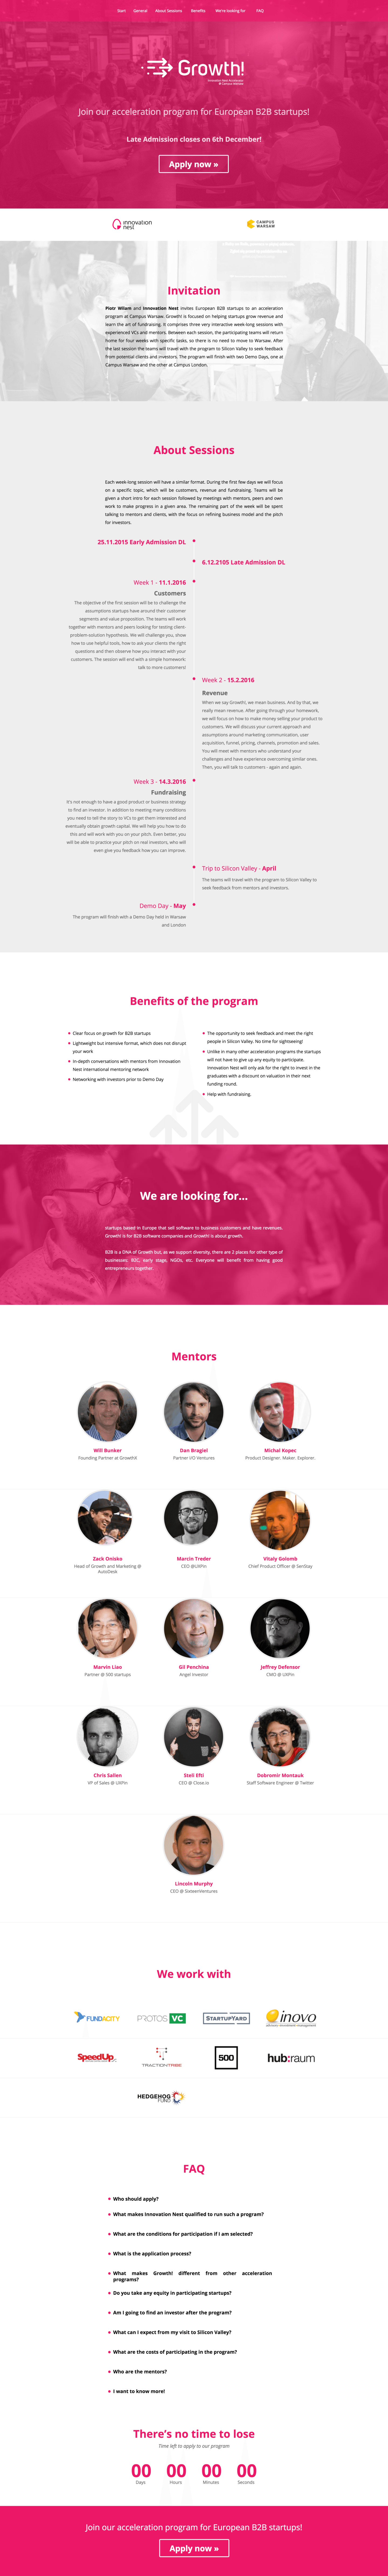 Our works - growth landing page